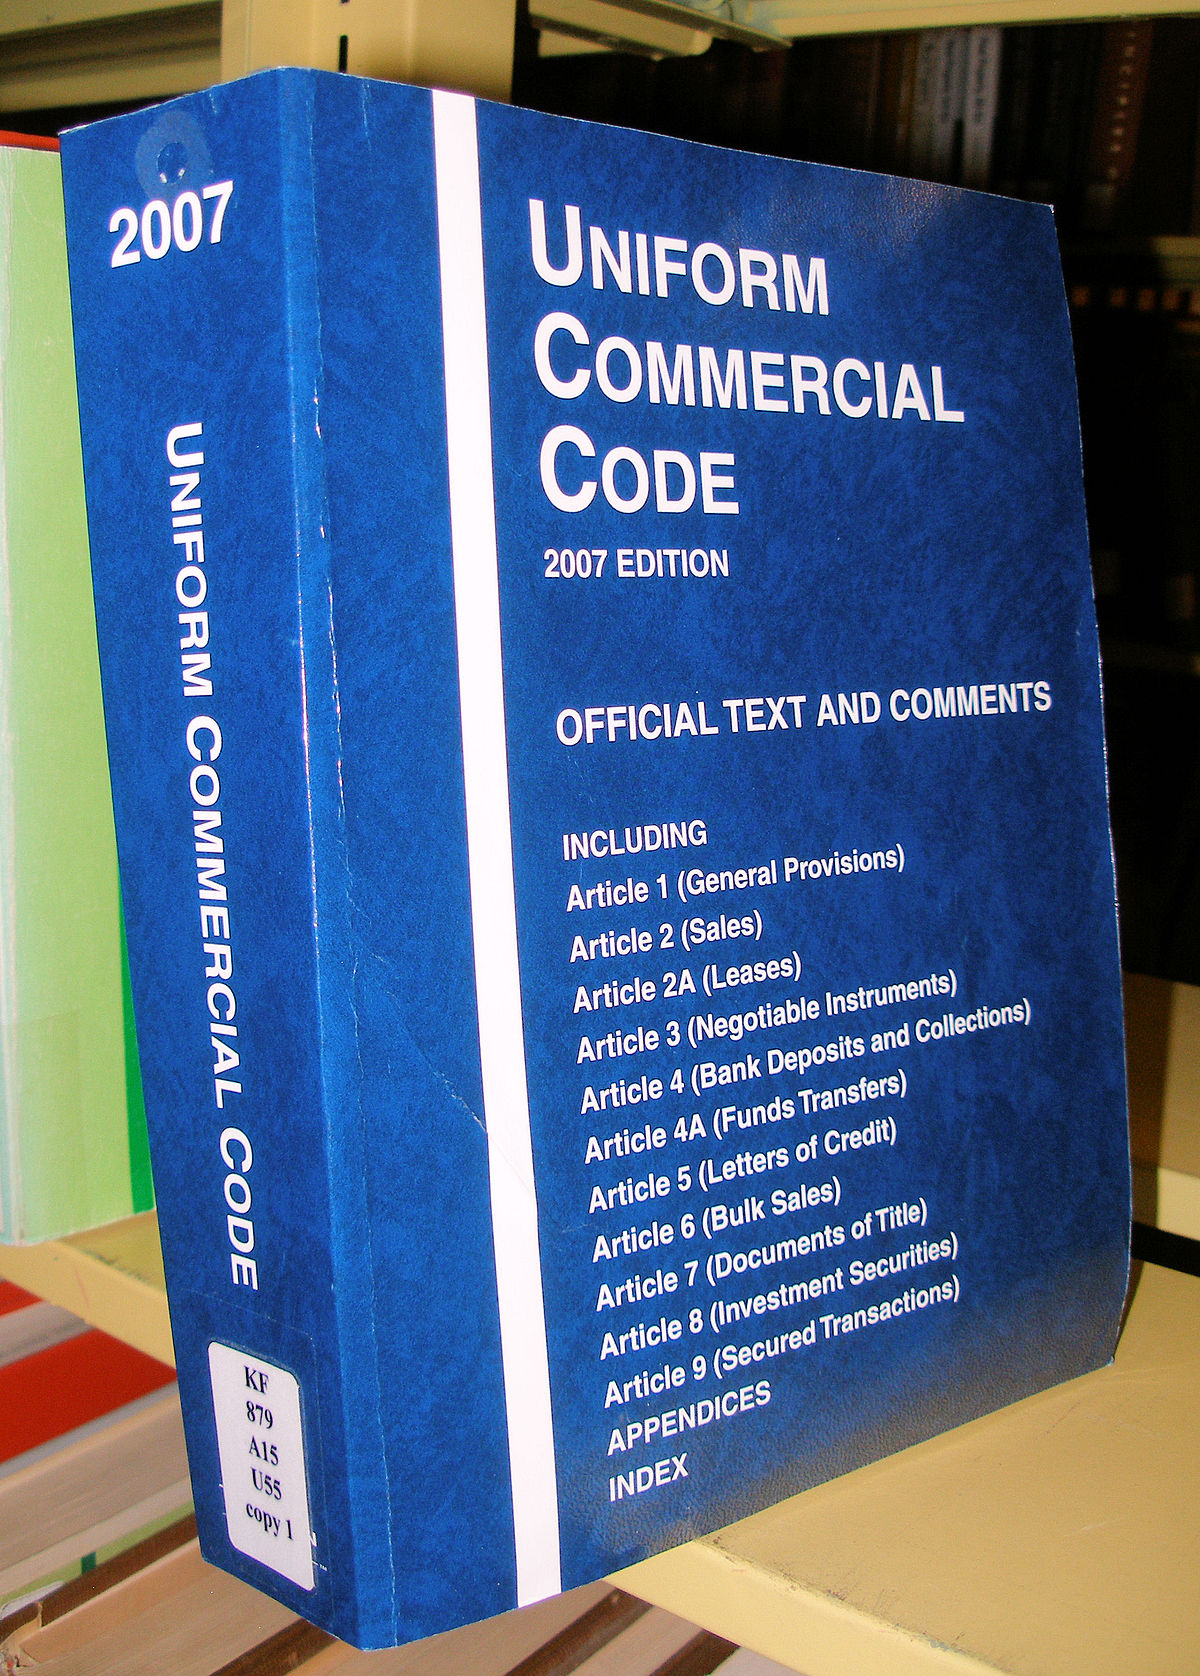 Uniform Commercial Code - Wikipedia